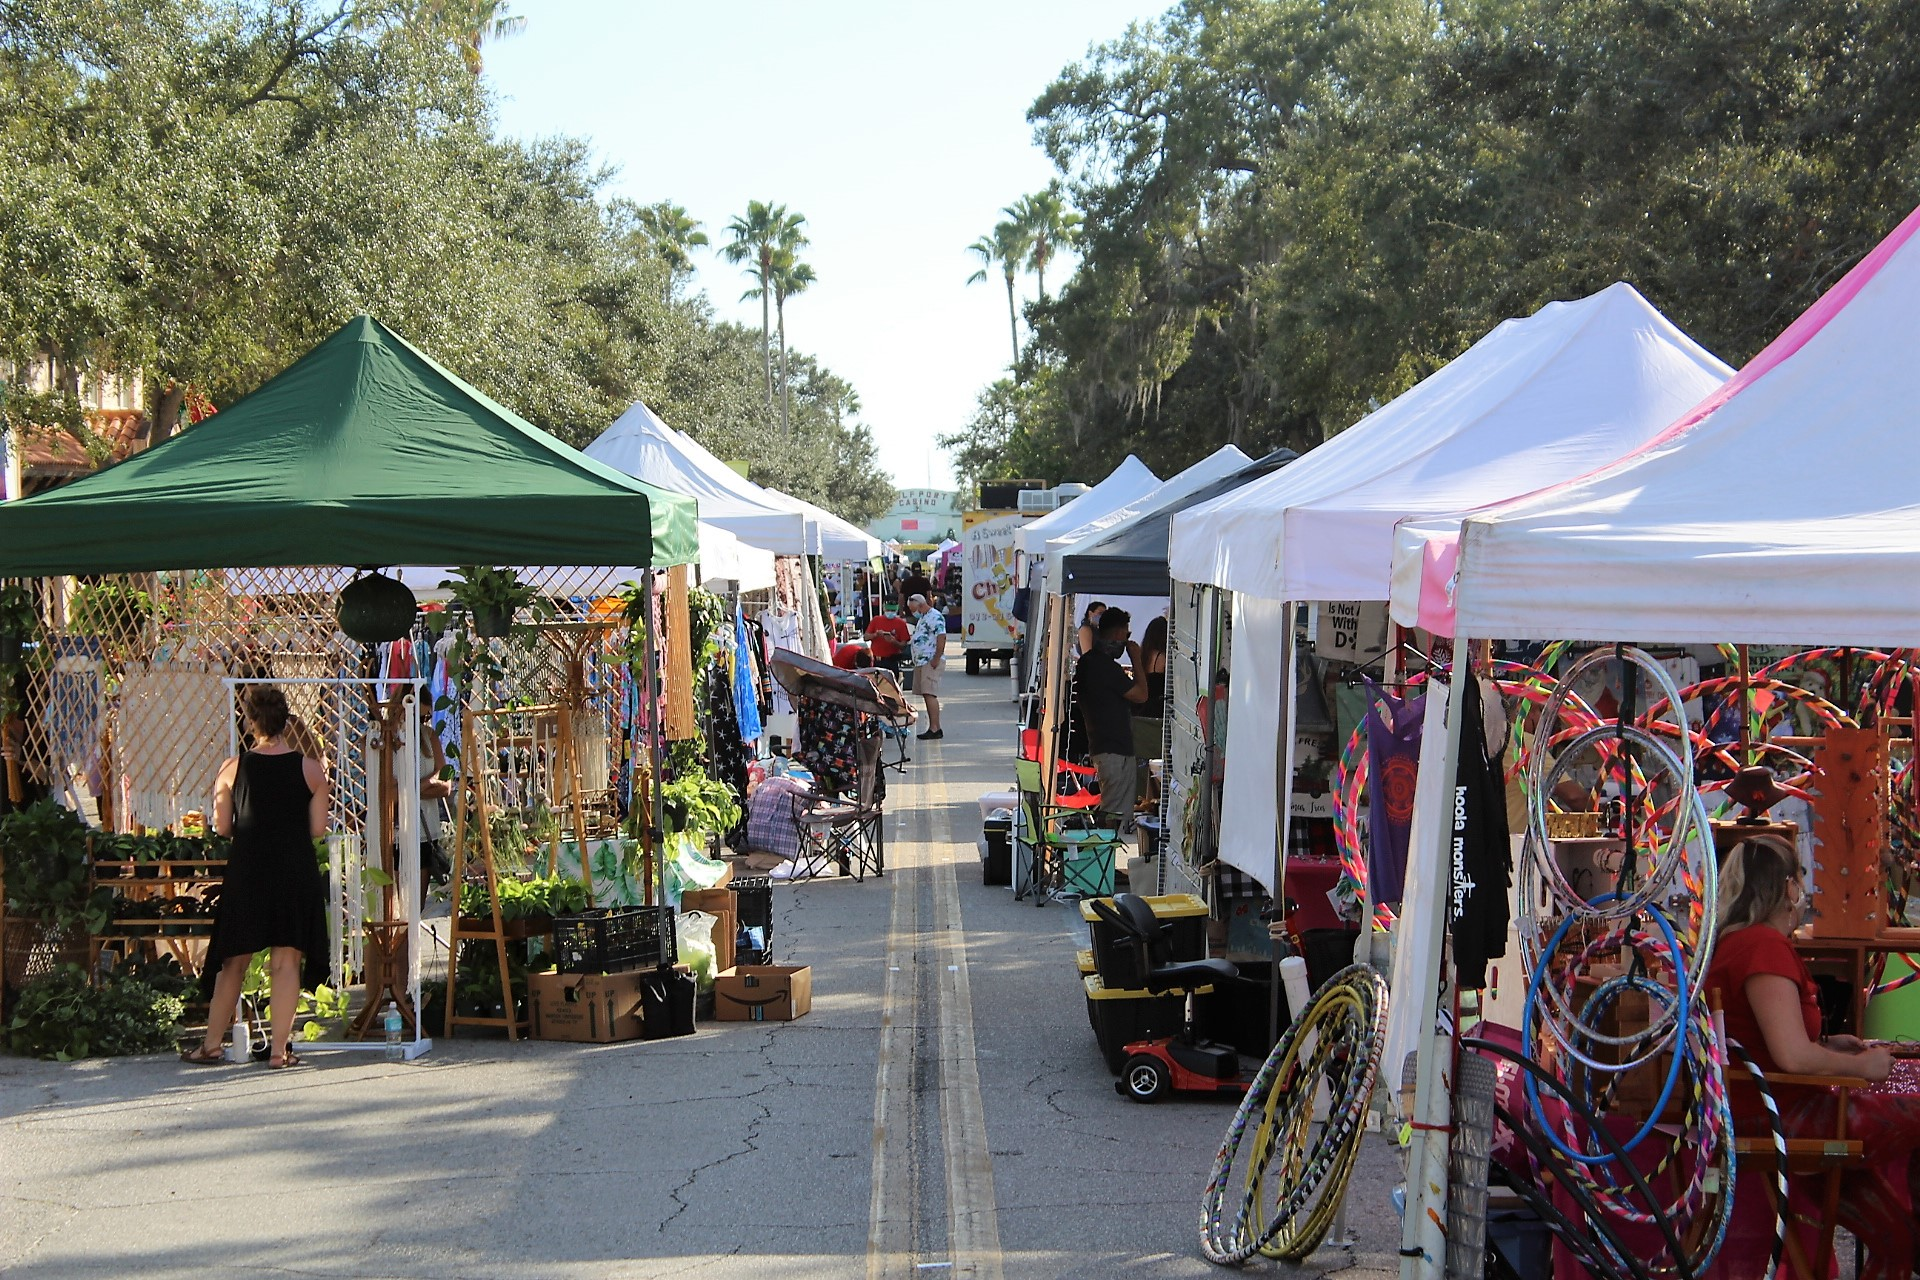 A row of vendor tents on a street.